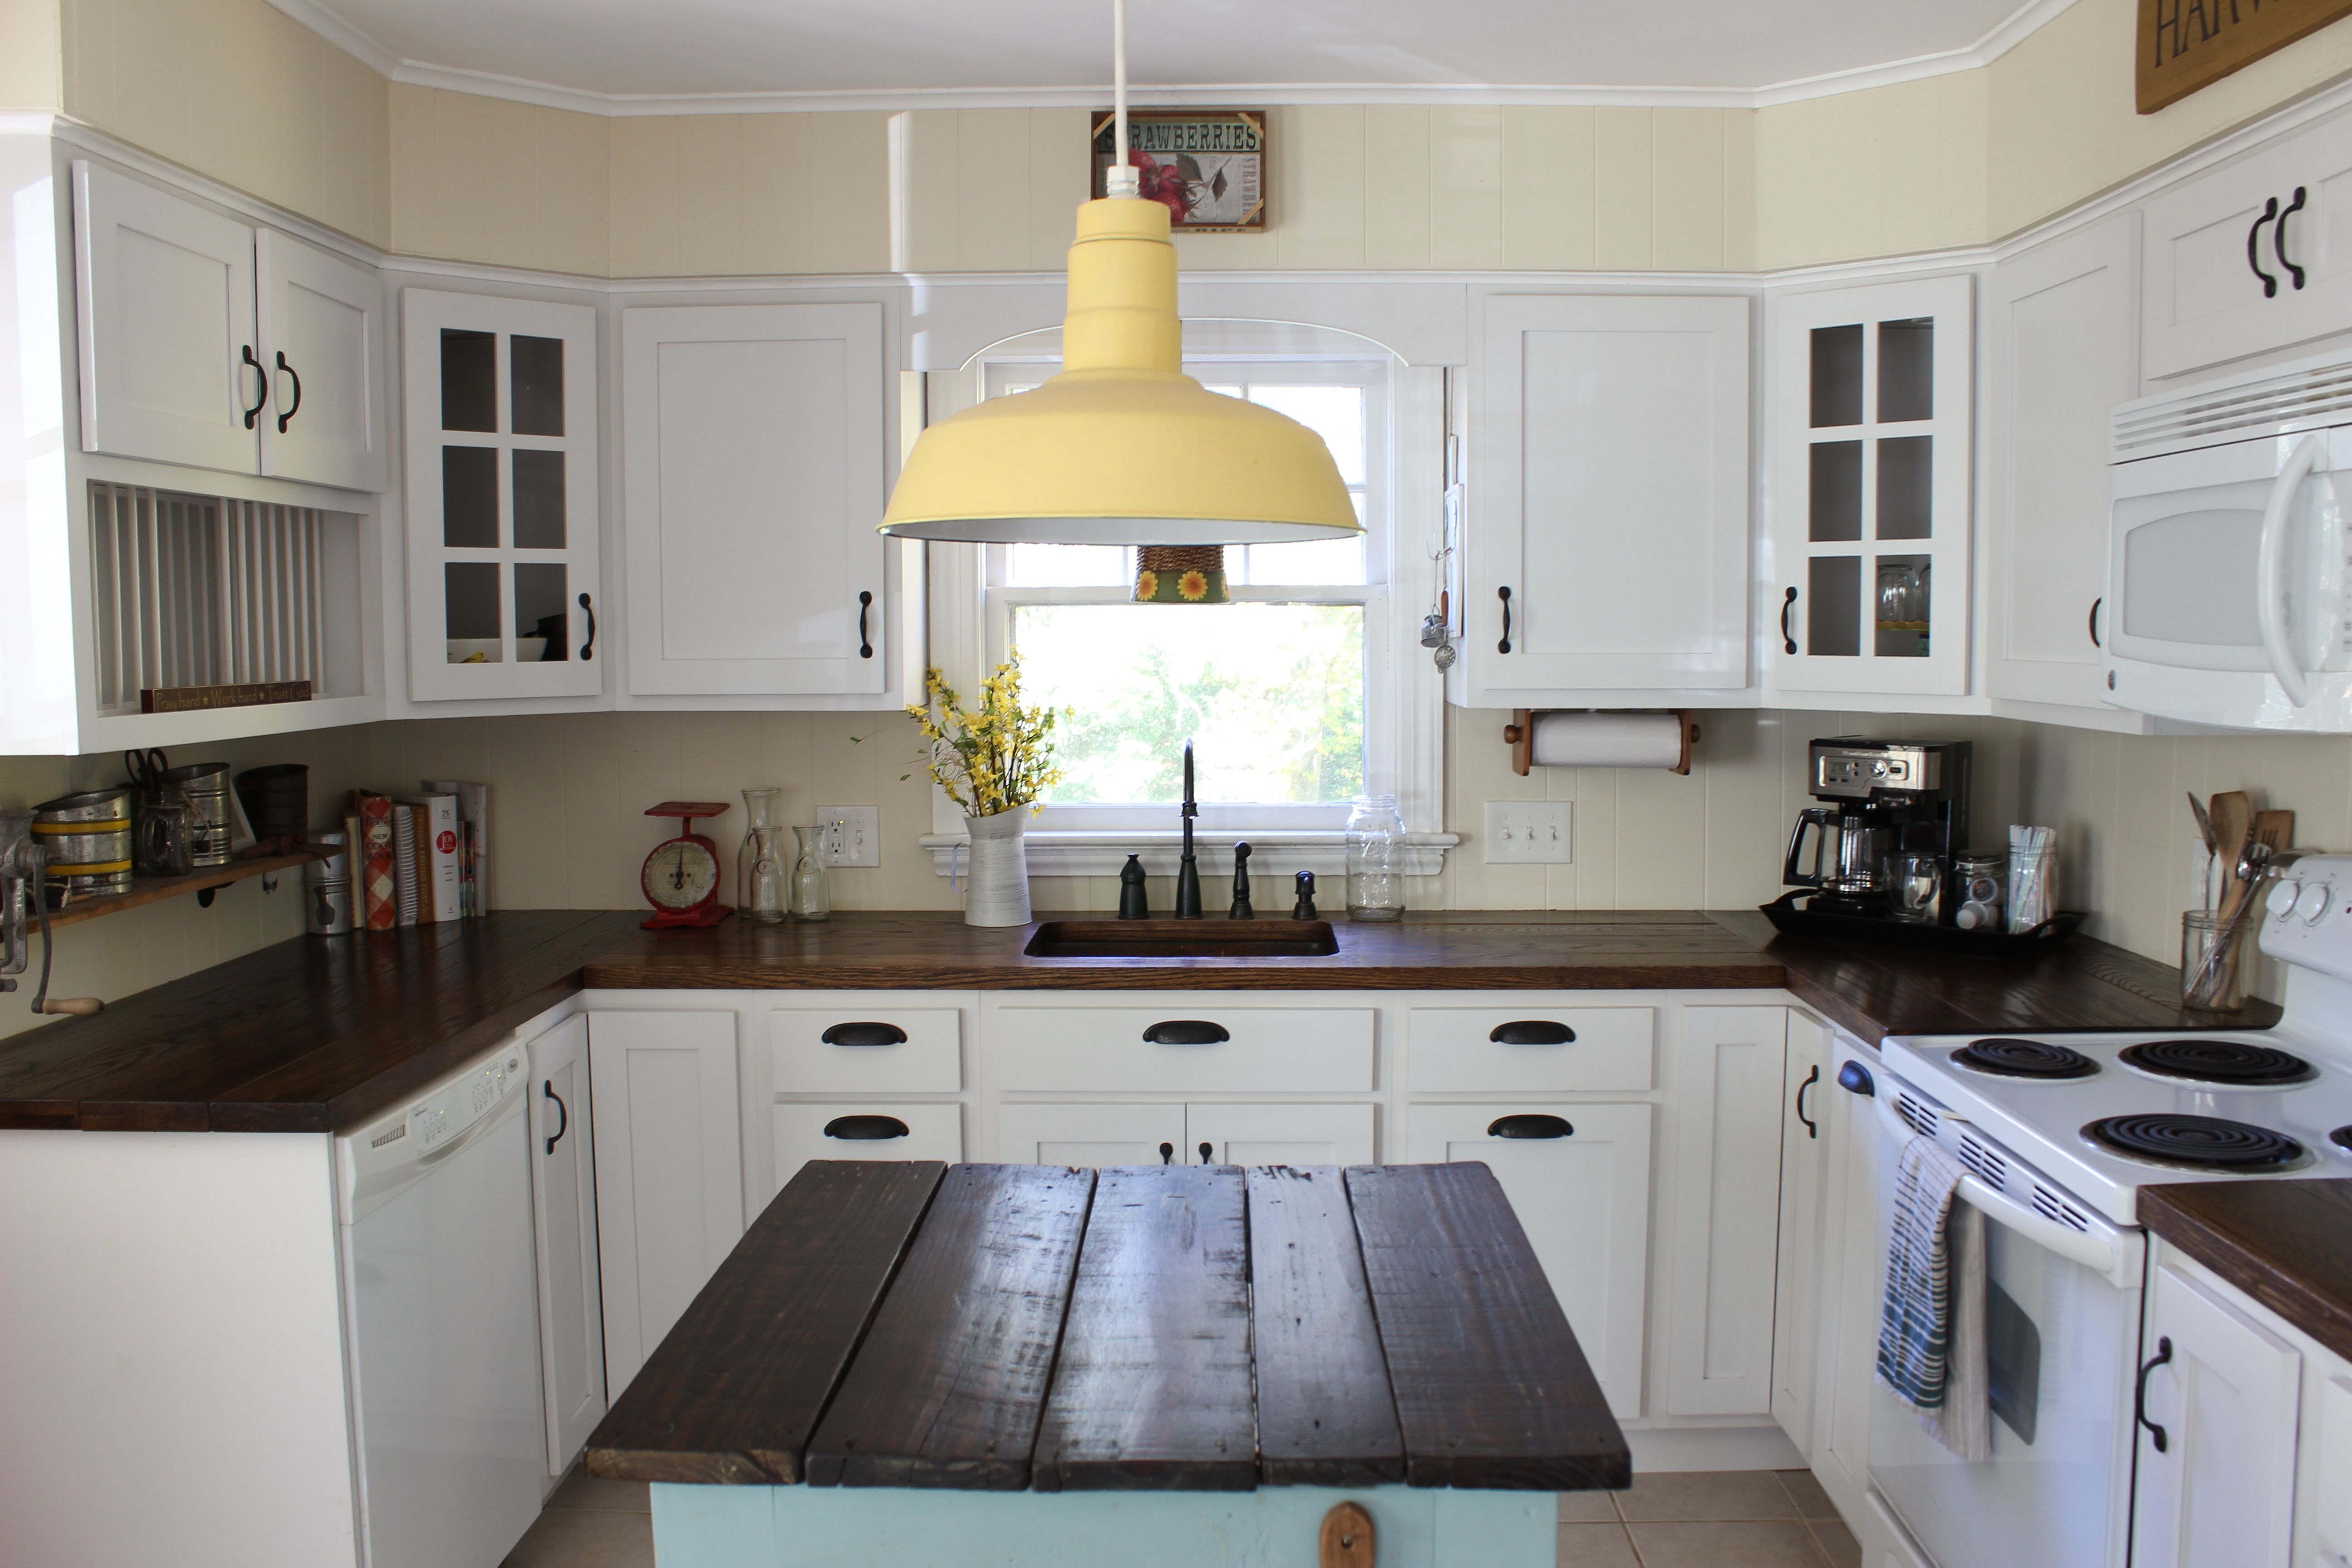 years into owning this home and the kitchen is done itus